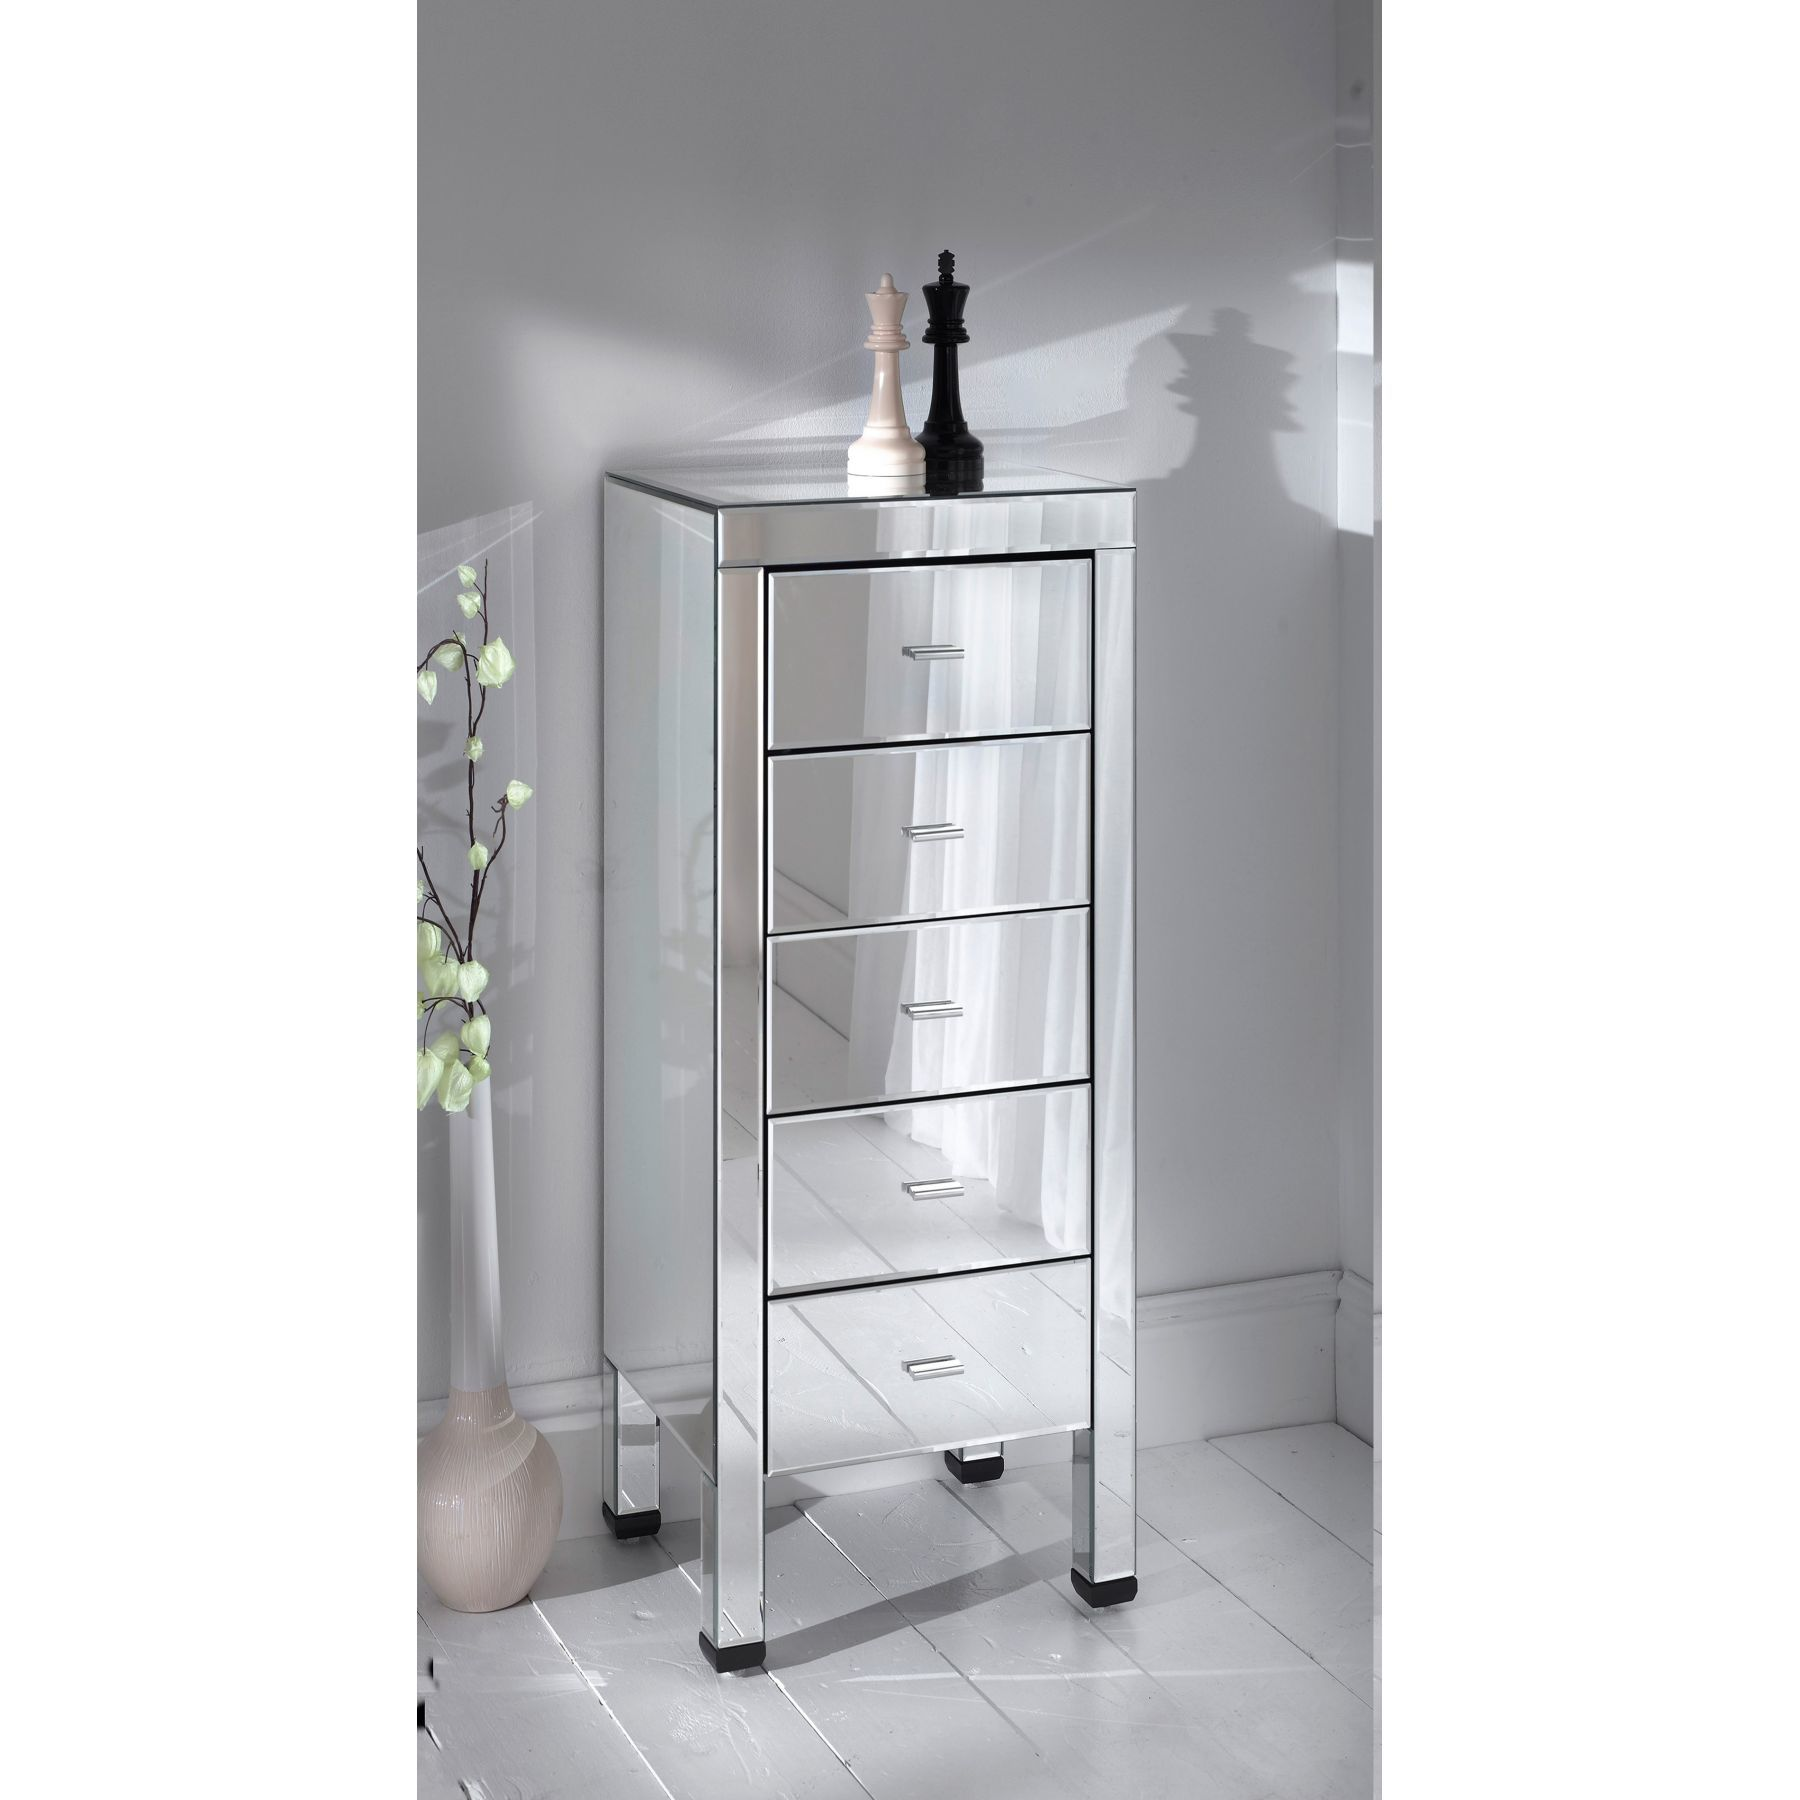 Mirrored Tall Boy Silver Mirrored Tall Boy Cabinet With 5 Drawers From Glit